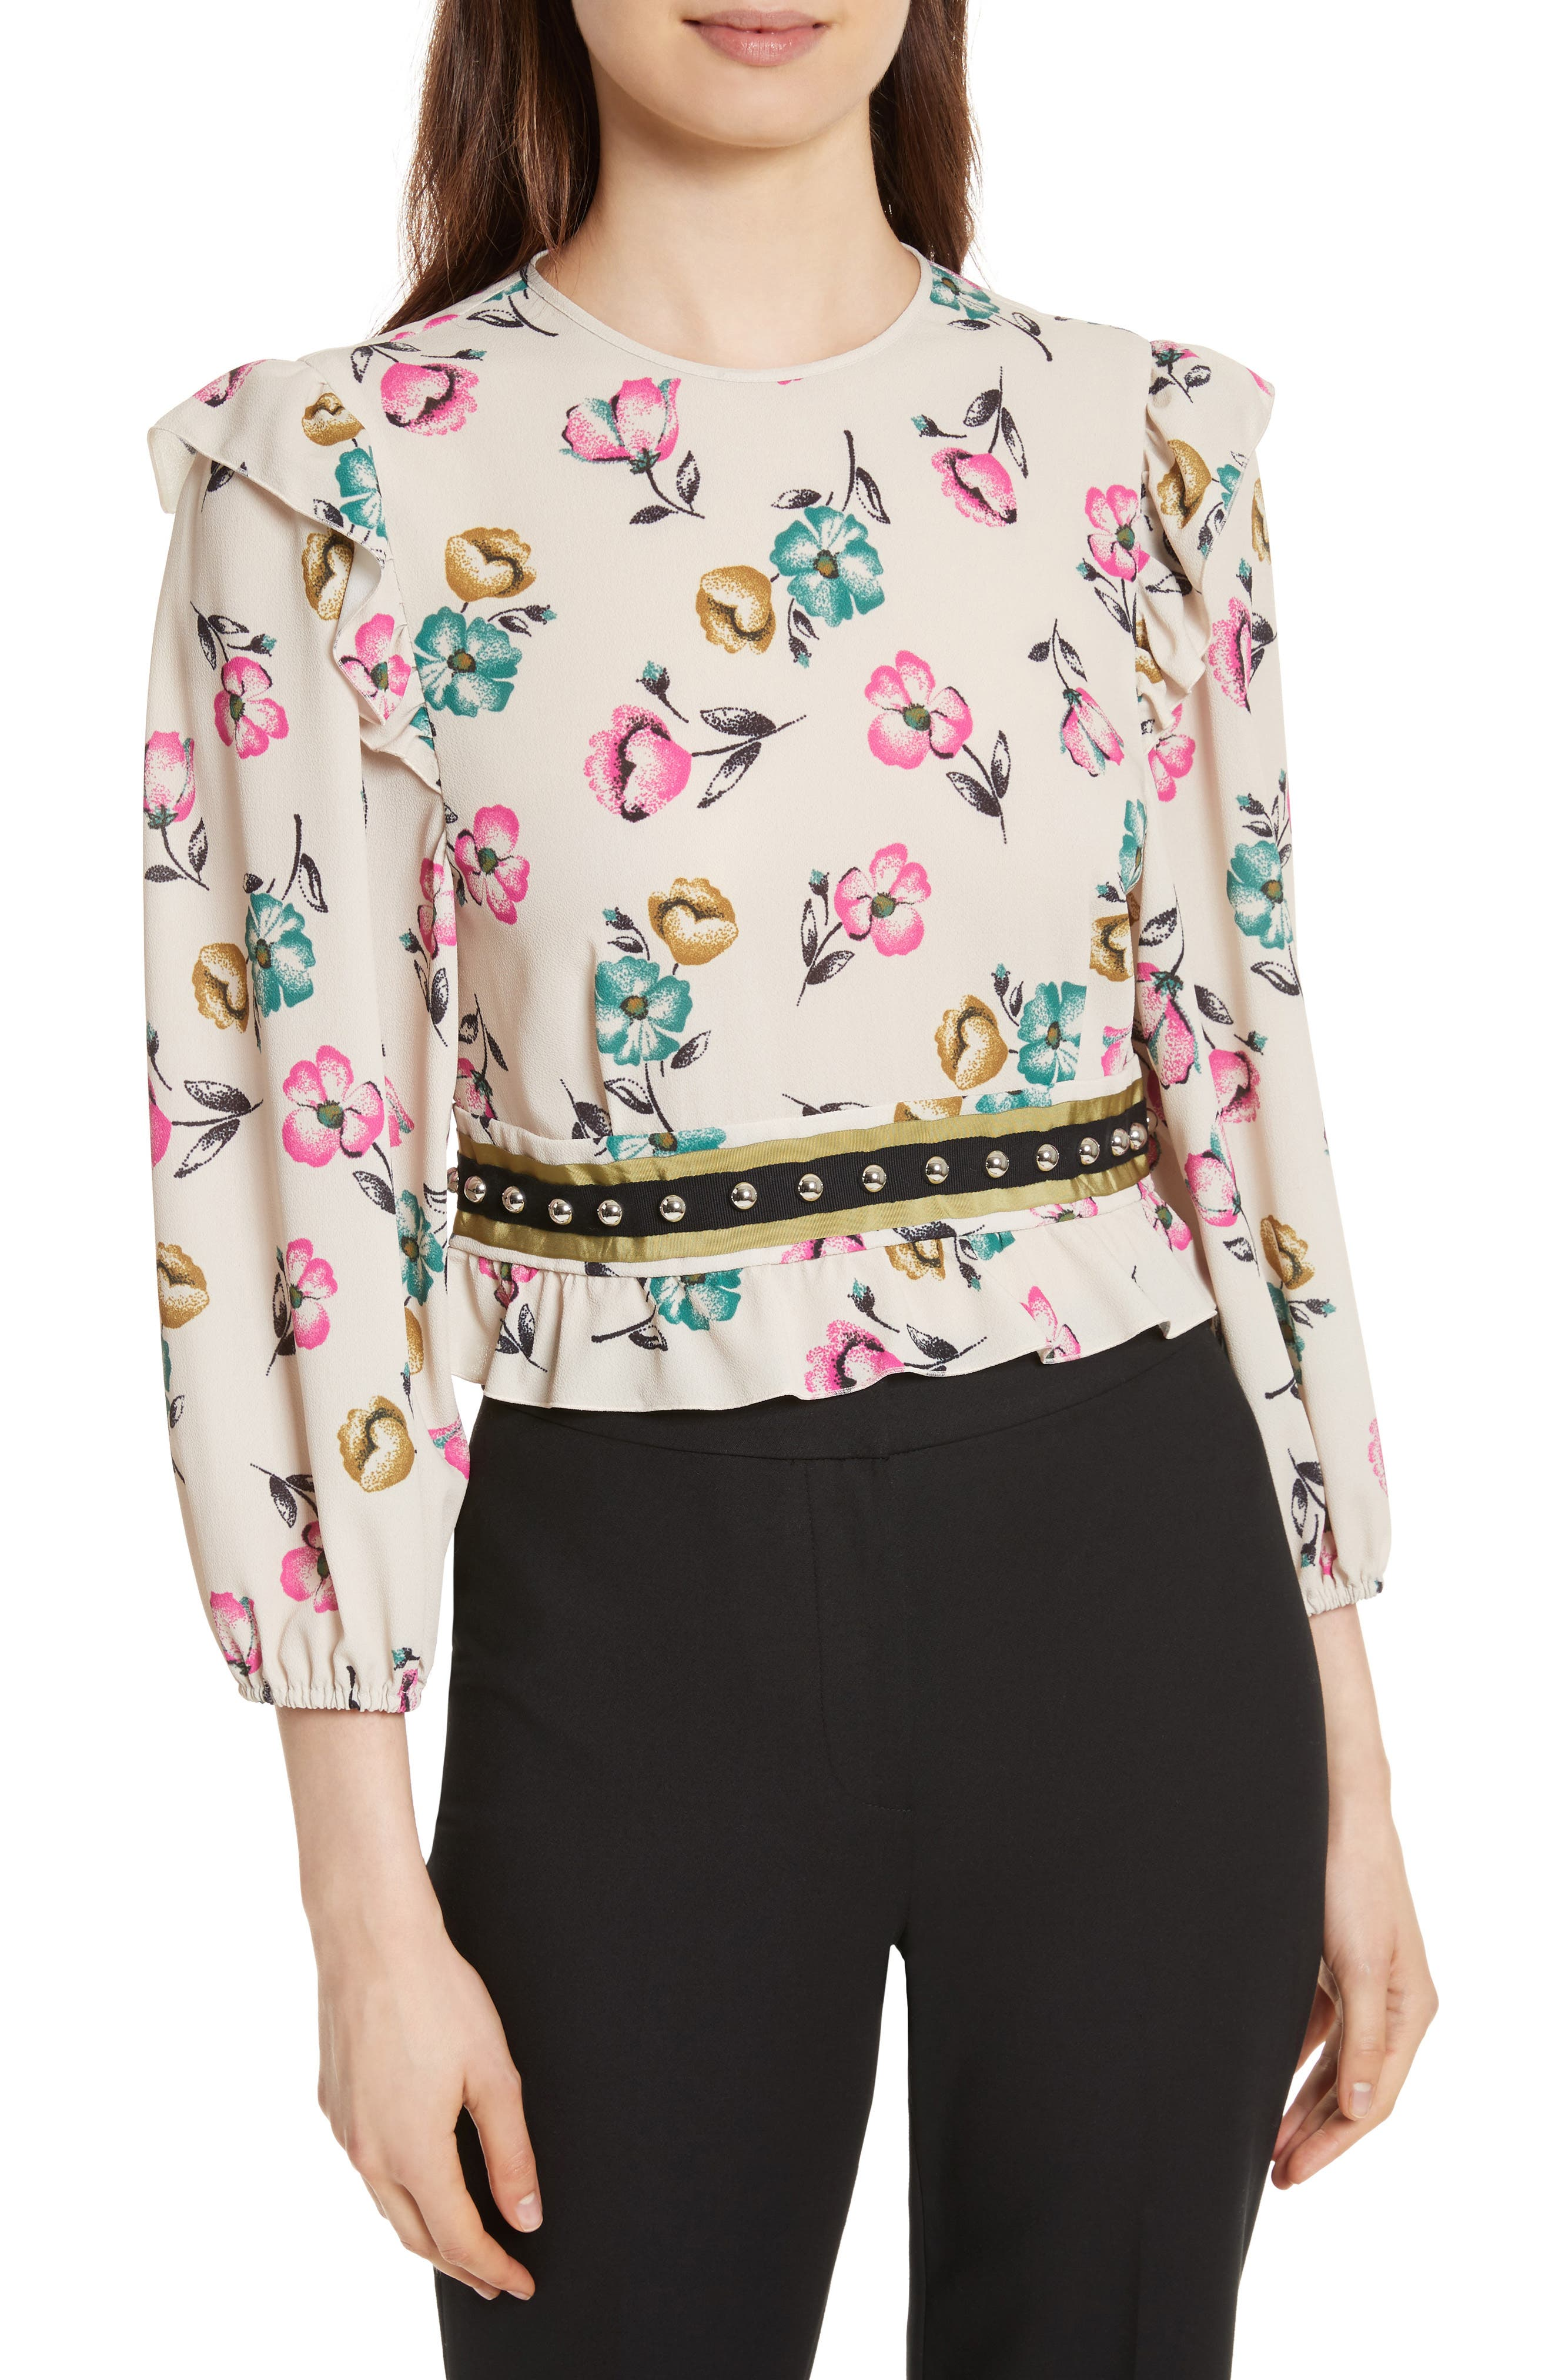 Main Image - RED Valentino Anemone Floral Print Blouse